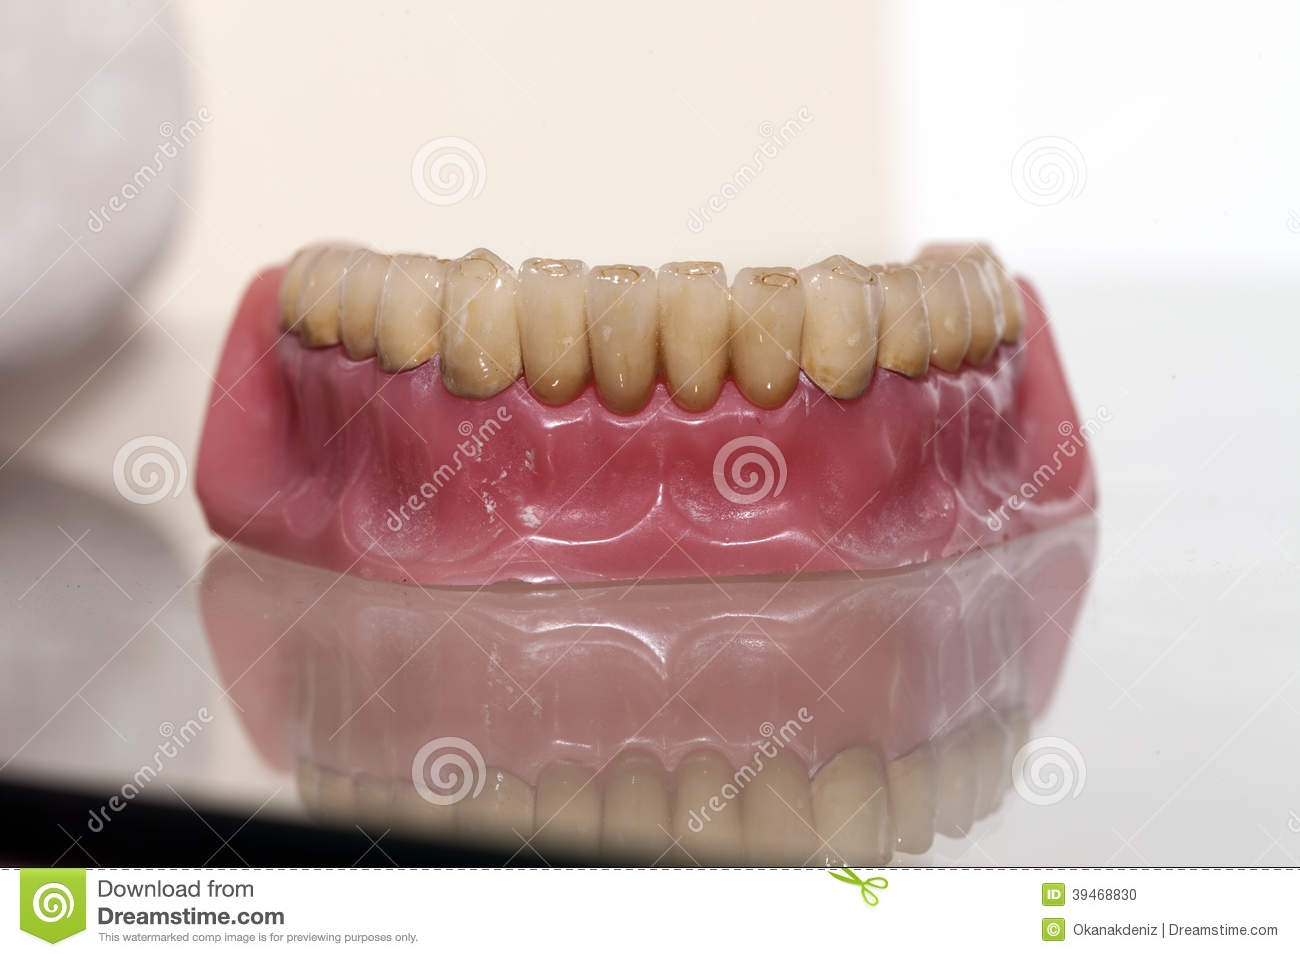 Dents En Porcelaine Plat De Dent De Porcelaine De Zirconium Photo Stock Image Du